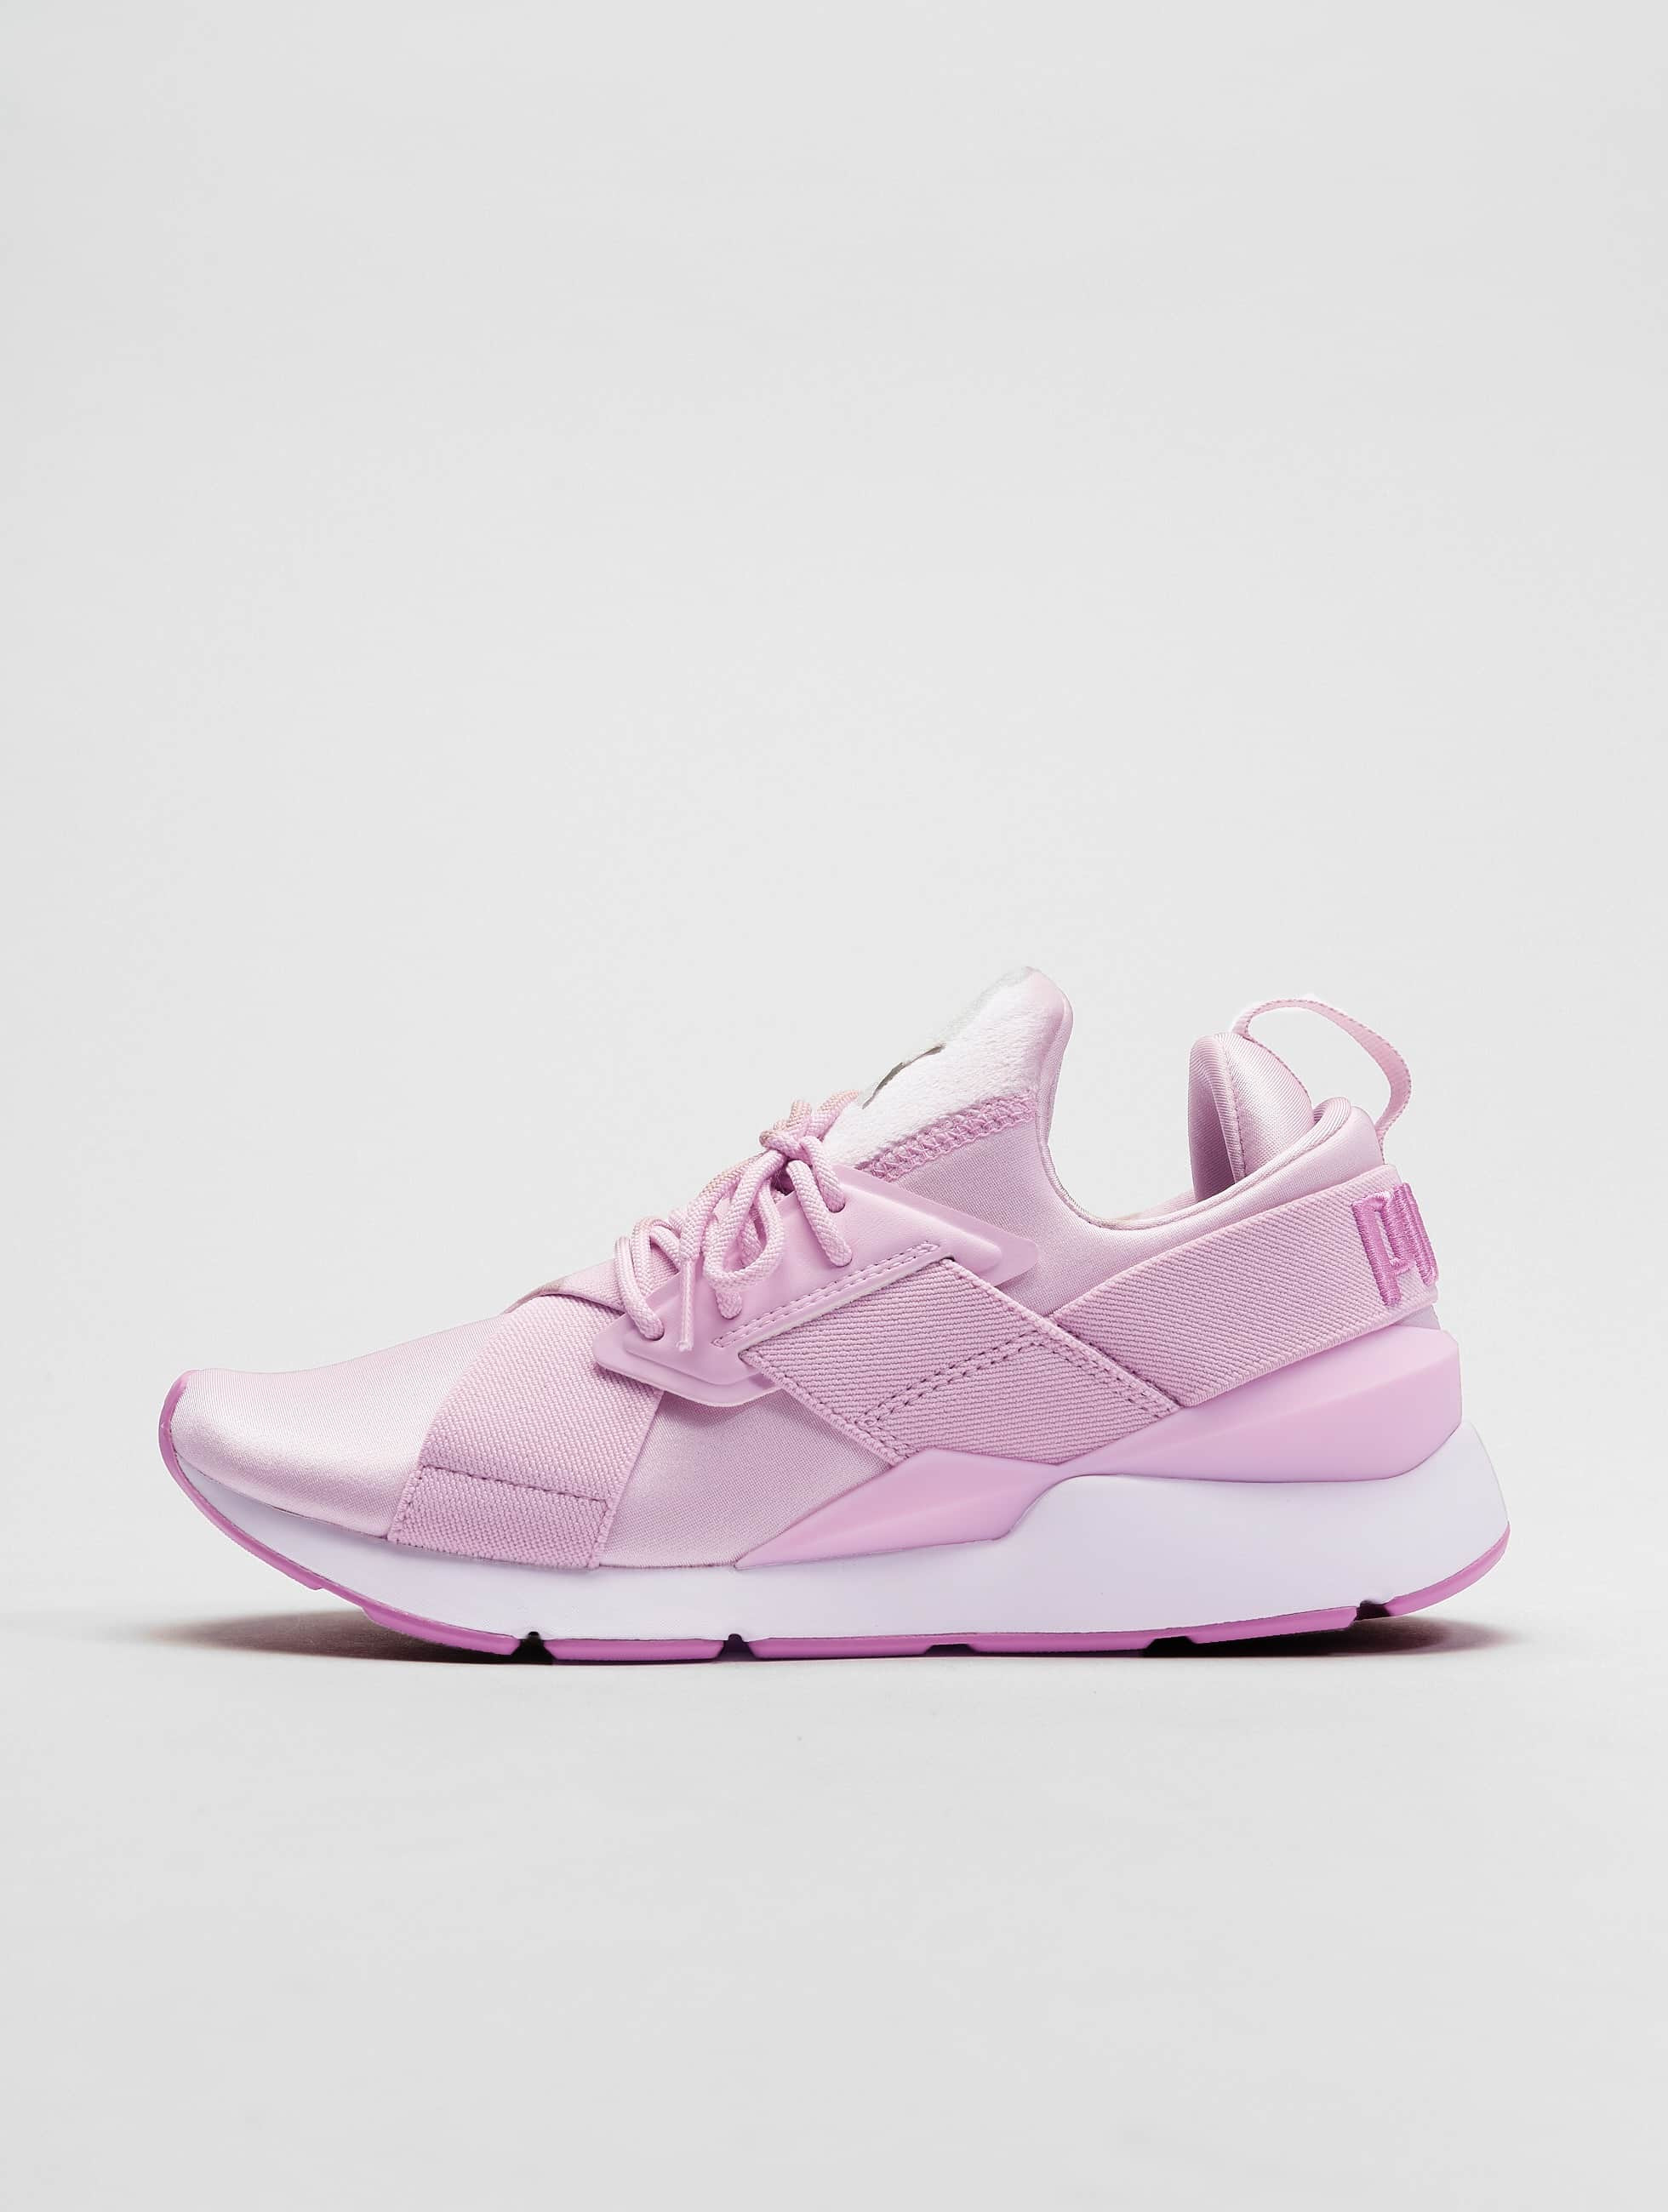 Orchidsmoky Grey Sneakers Puma Satin Ii Winsome Muse UzVMSp